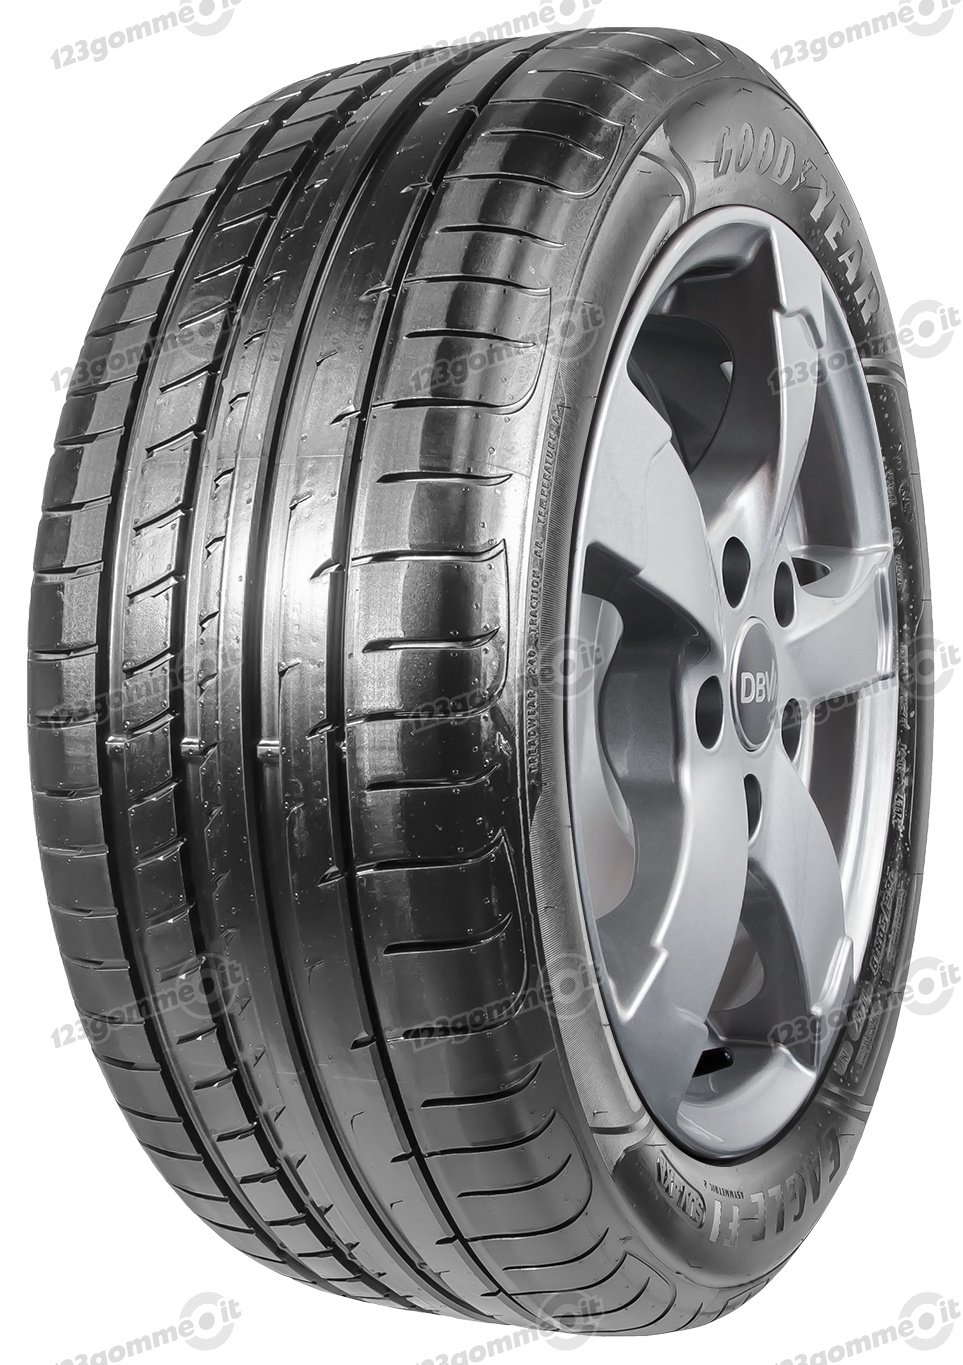 215/35 R18 84W Eagle F1 Asymmetric XL FP  Eagle F1 Asymmetric XL FP